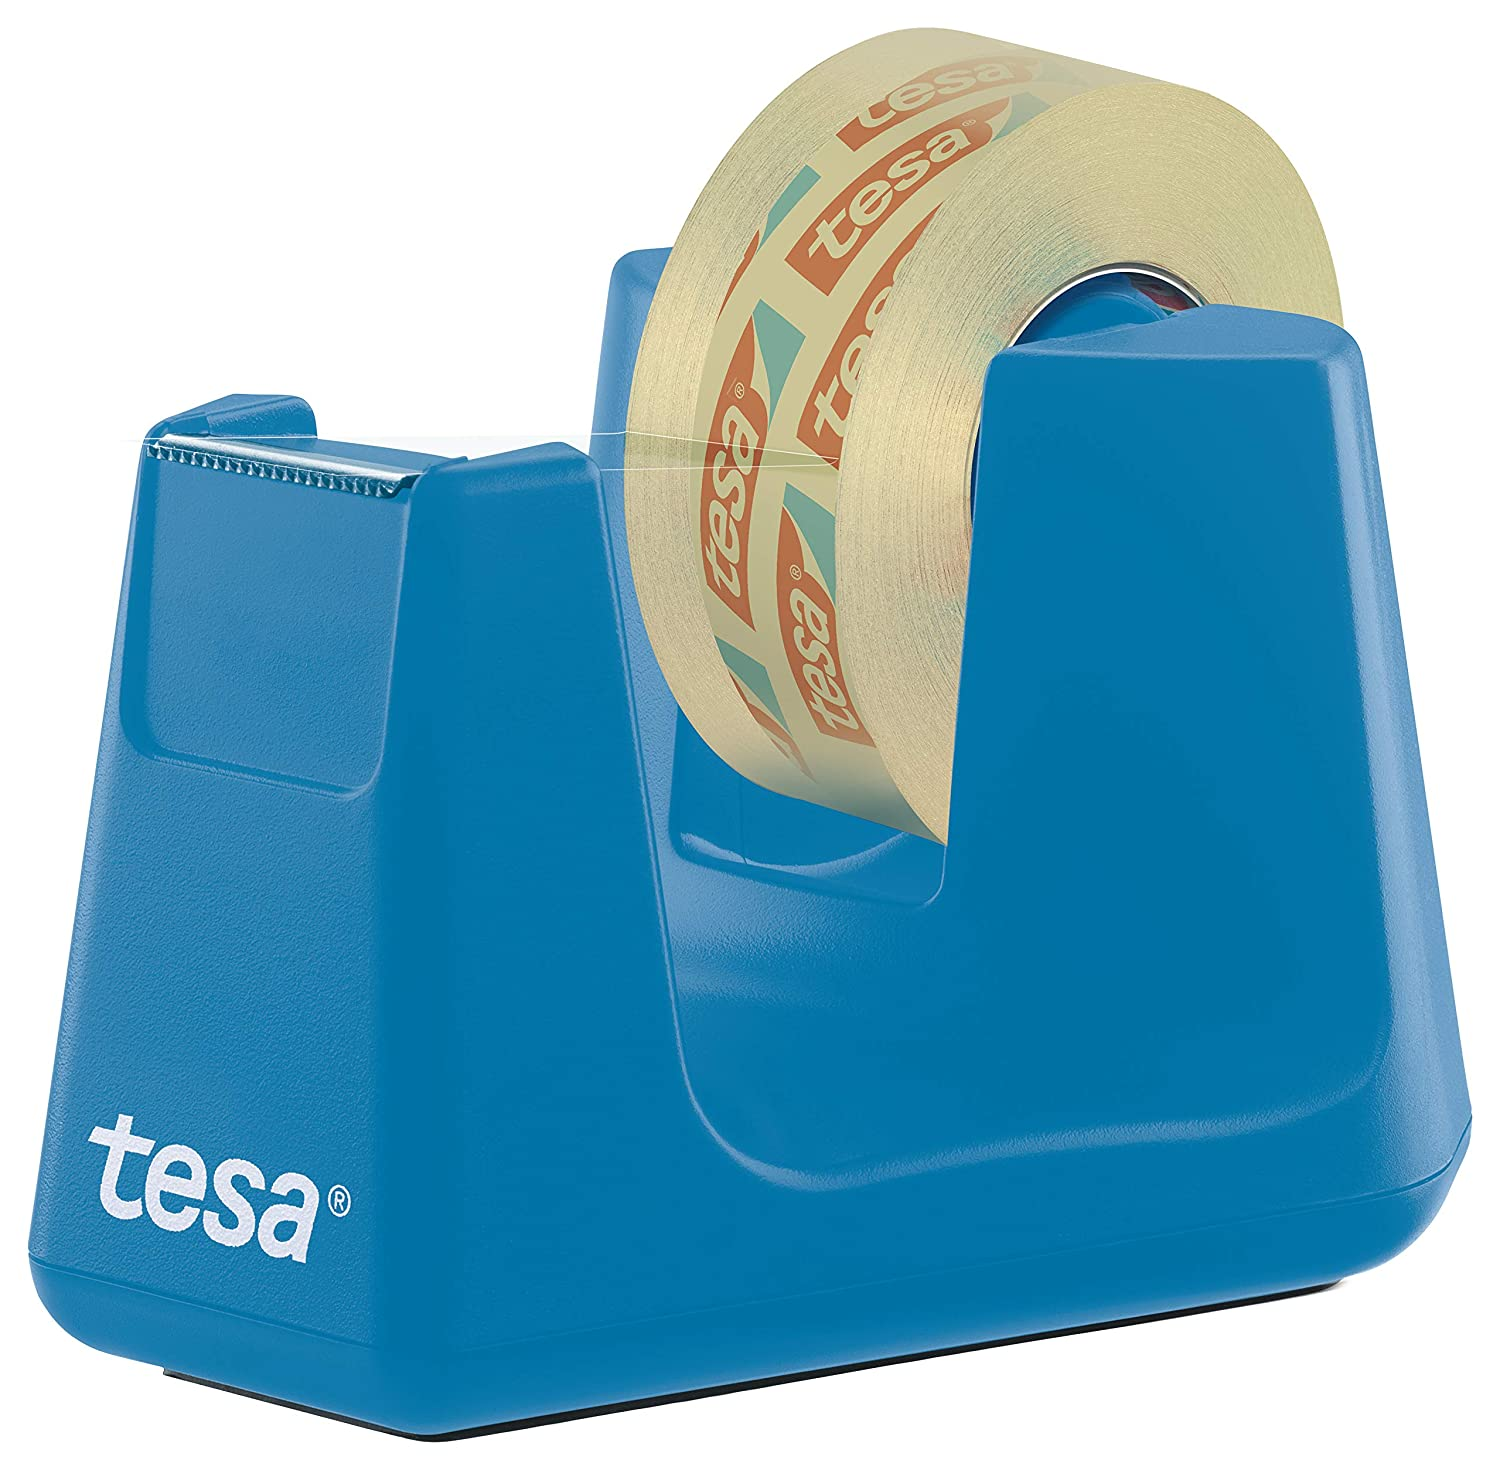 tesa 53908 Dispensador de Cinta Easy Cut Professional para Escritorio-ergonómico, Muy Estable, Disponible en Varios Colores, Azul, 33m:19mm: Amazon.es: ...